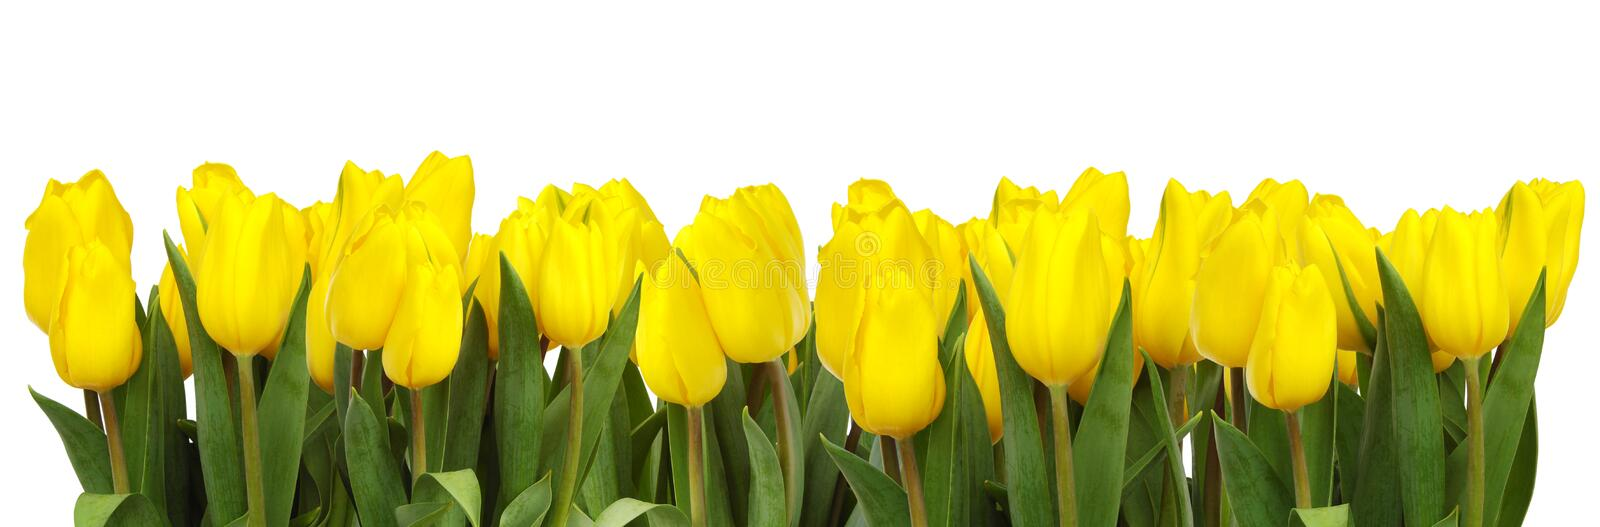 Line of yellow tulips royalty free stock images